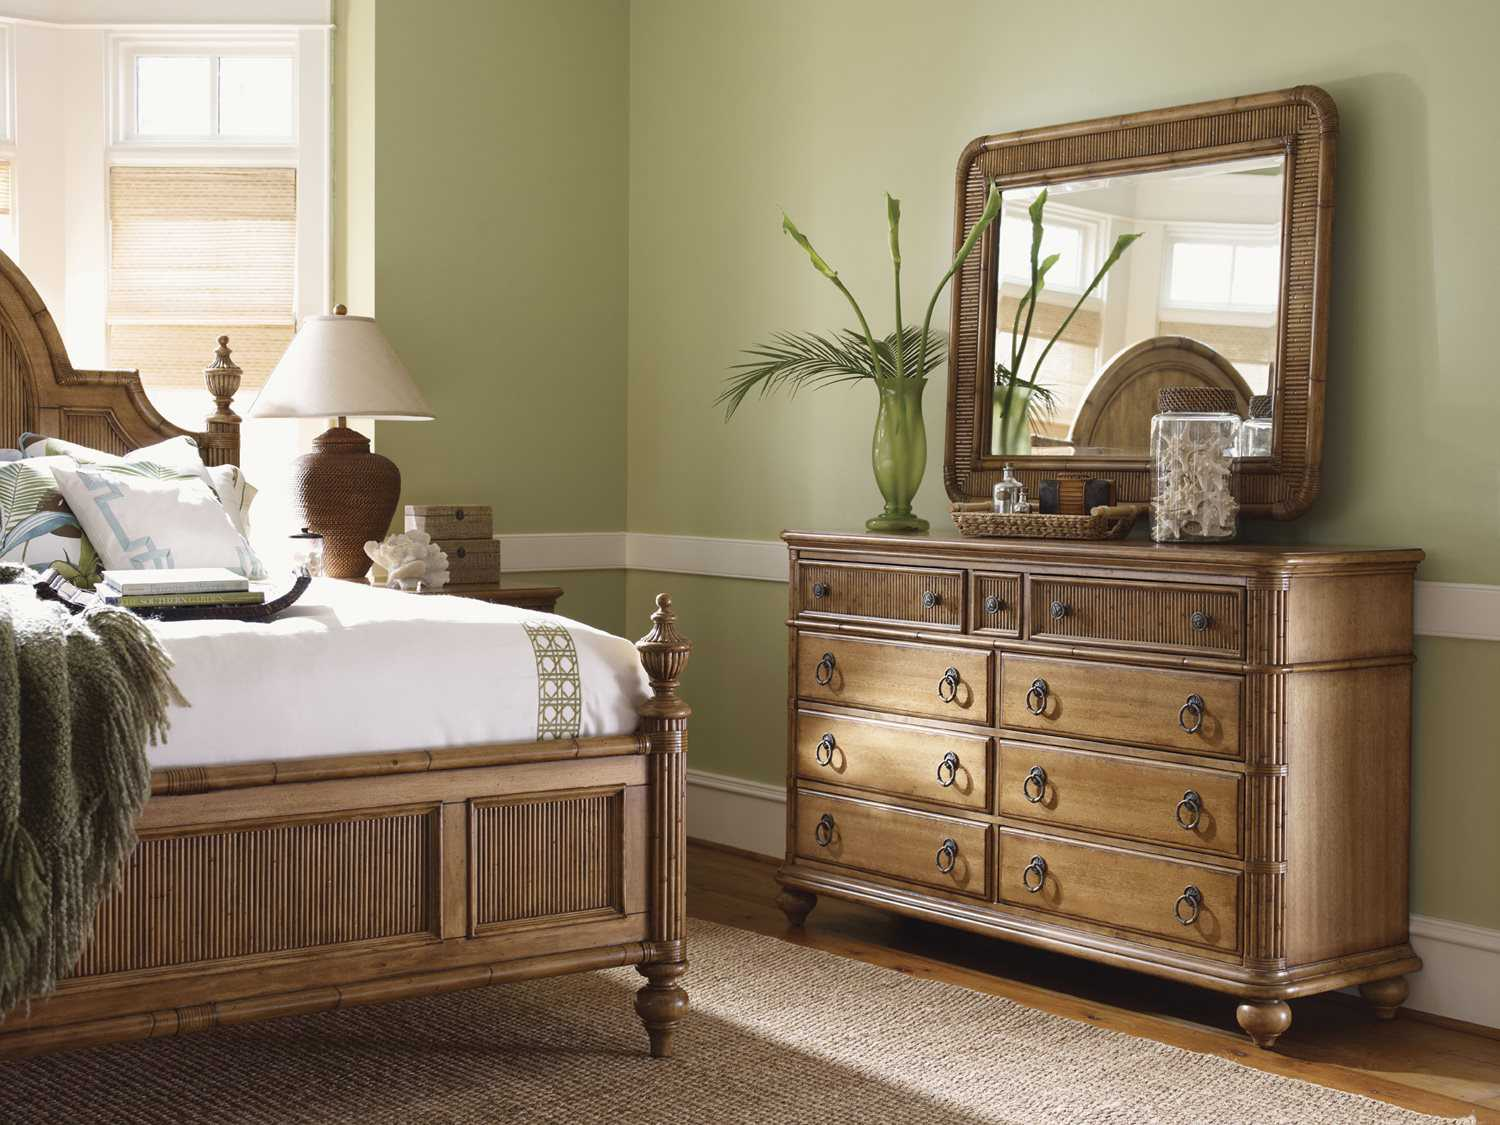 astounding tommy bahama bedroom furniture white | Tommy Bahama Beach House Belle Isle Bedroom Set | 01-0540 ...